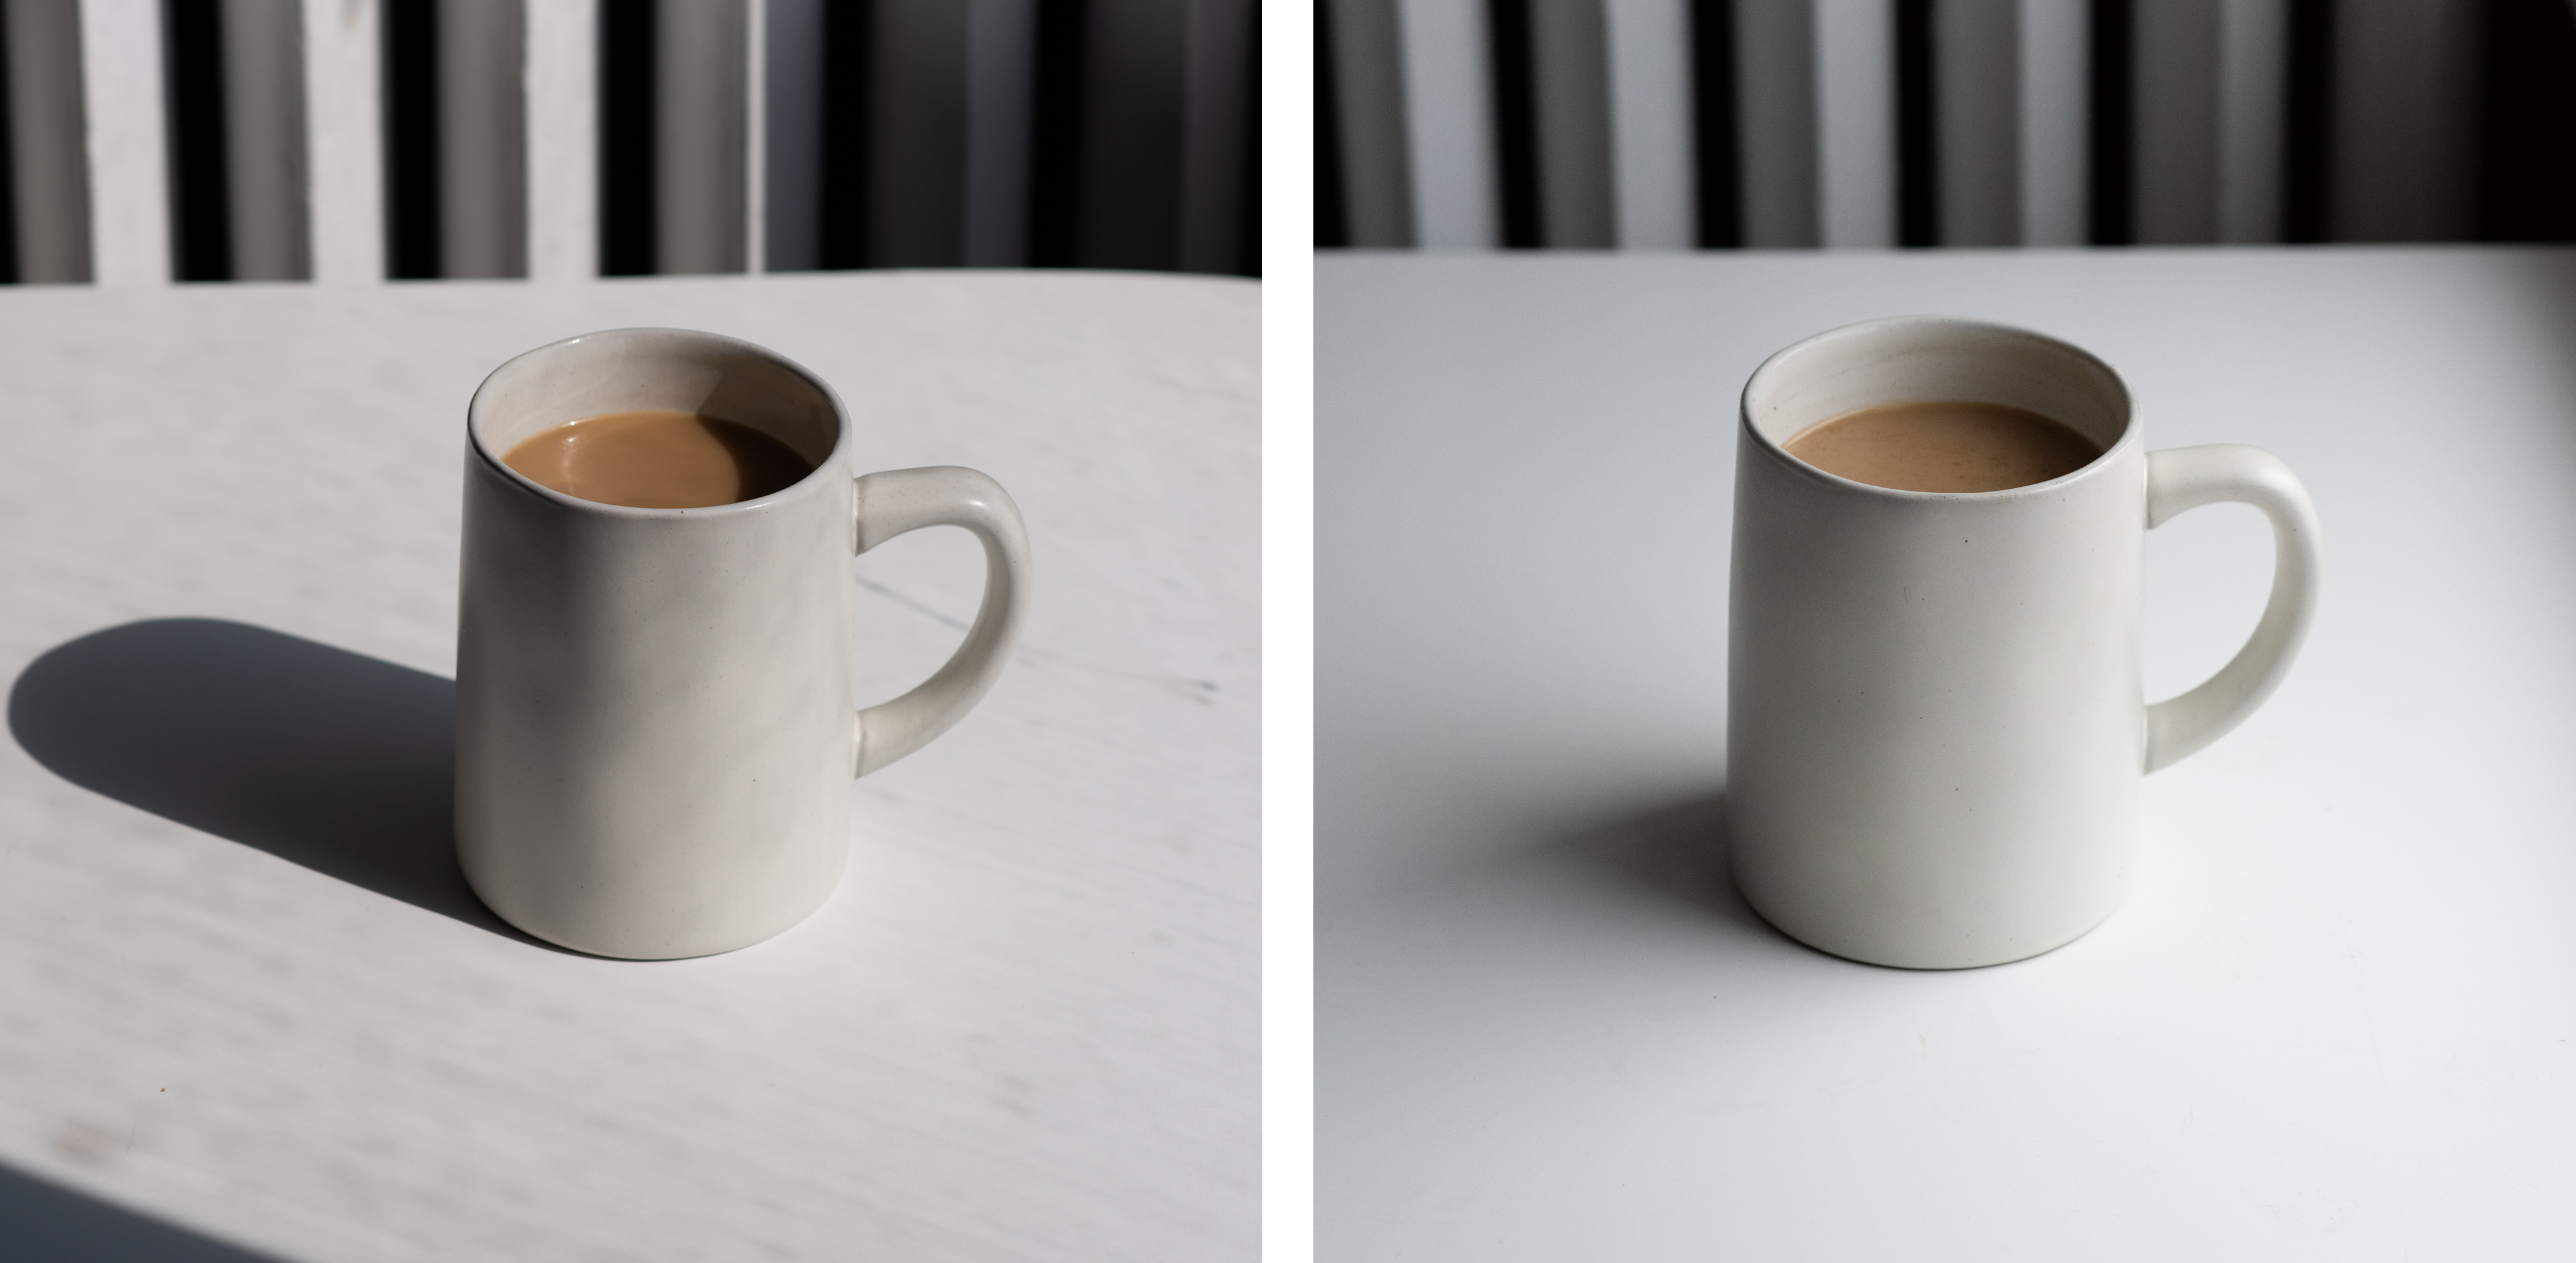 demonstration of different kinds of natural light on a mug, photographed by jamie bannon photography.